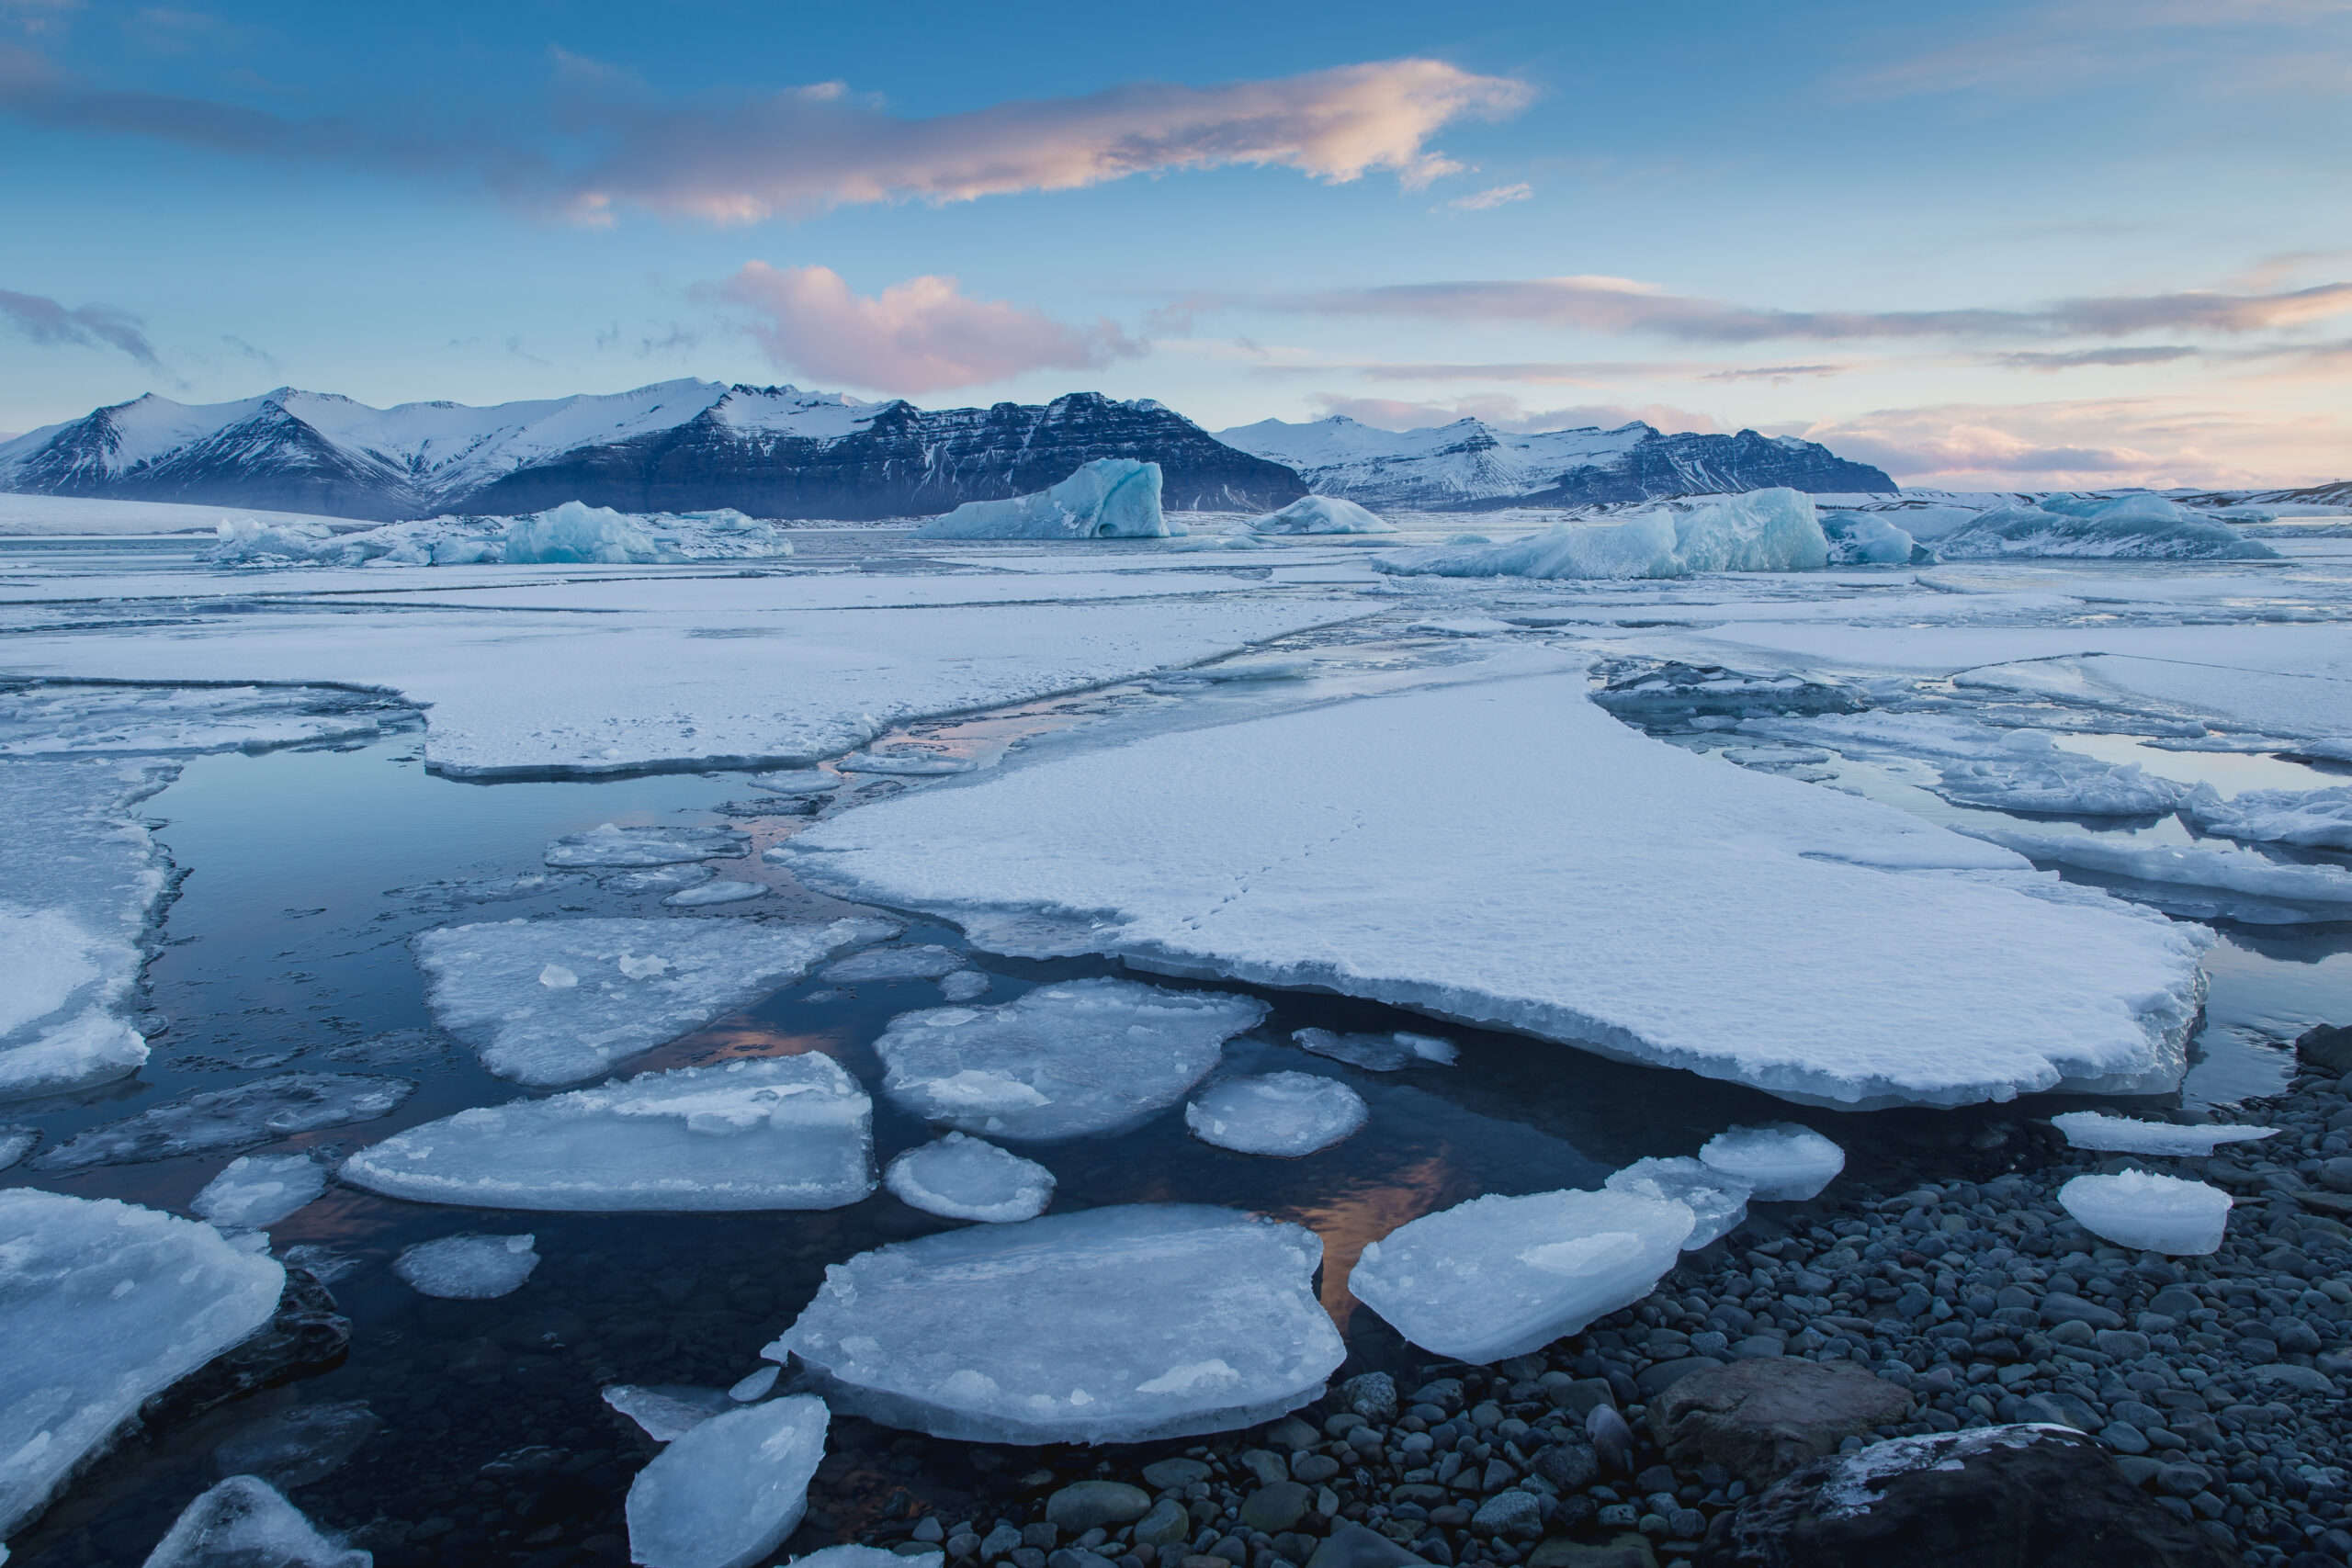 Glaciers melting due to global warming. Image credit: iStock.